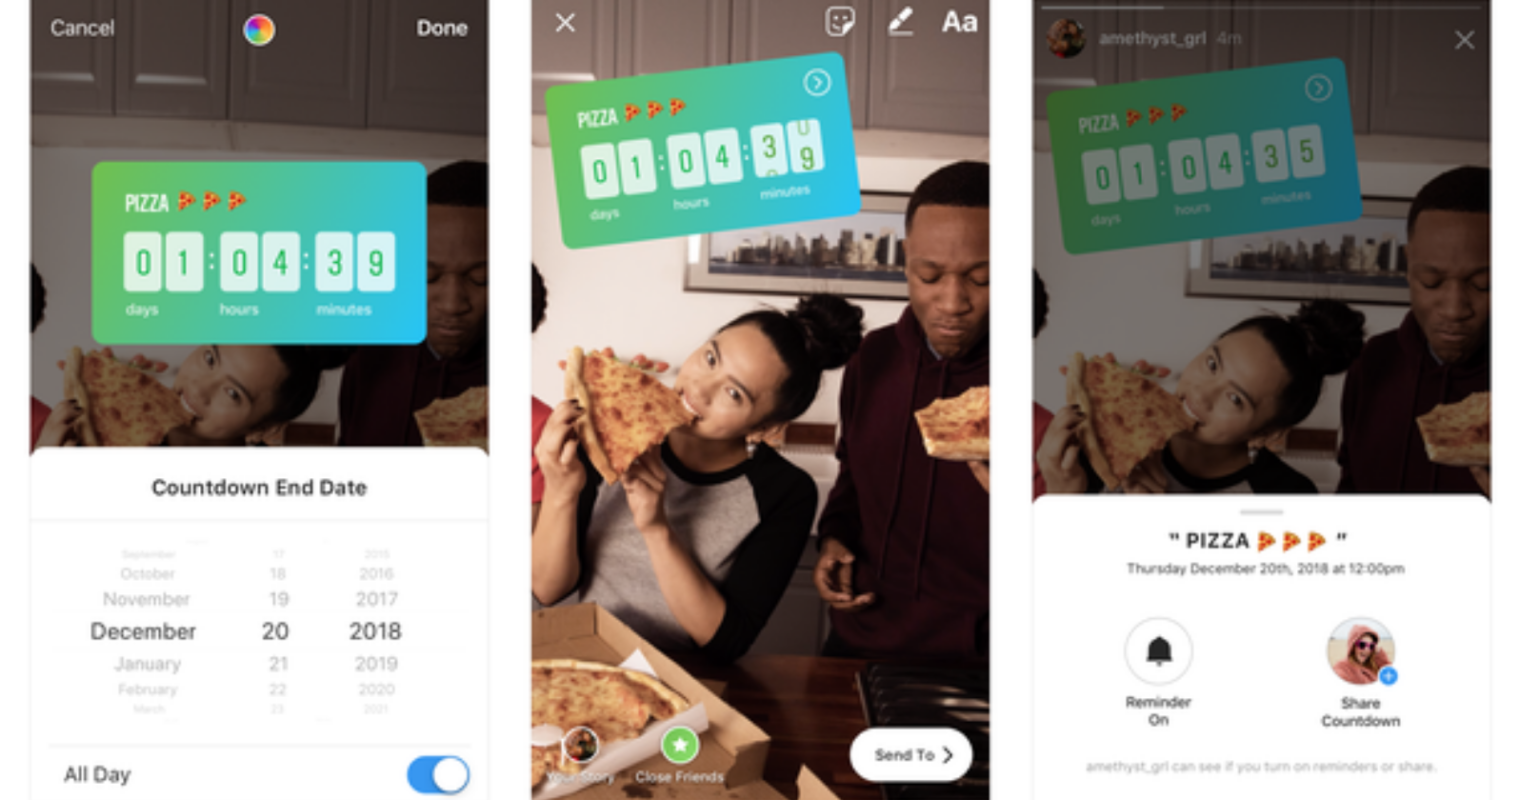 Instagram Adds New Ways to Engage With Followers